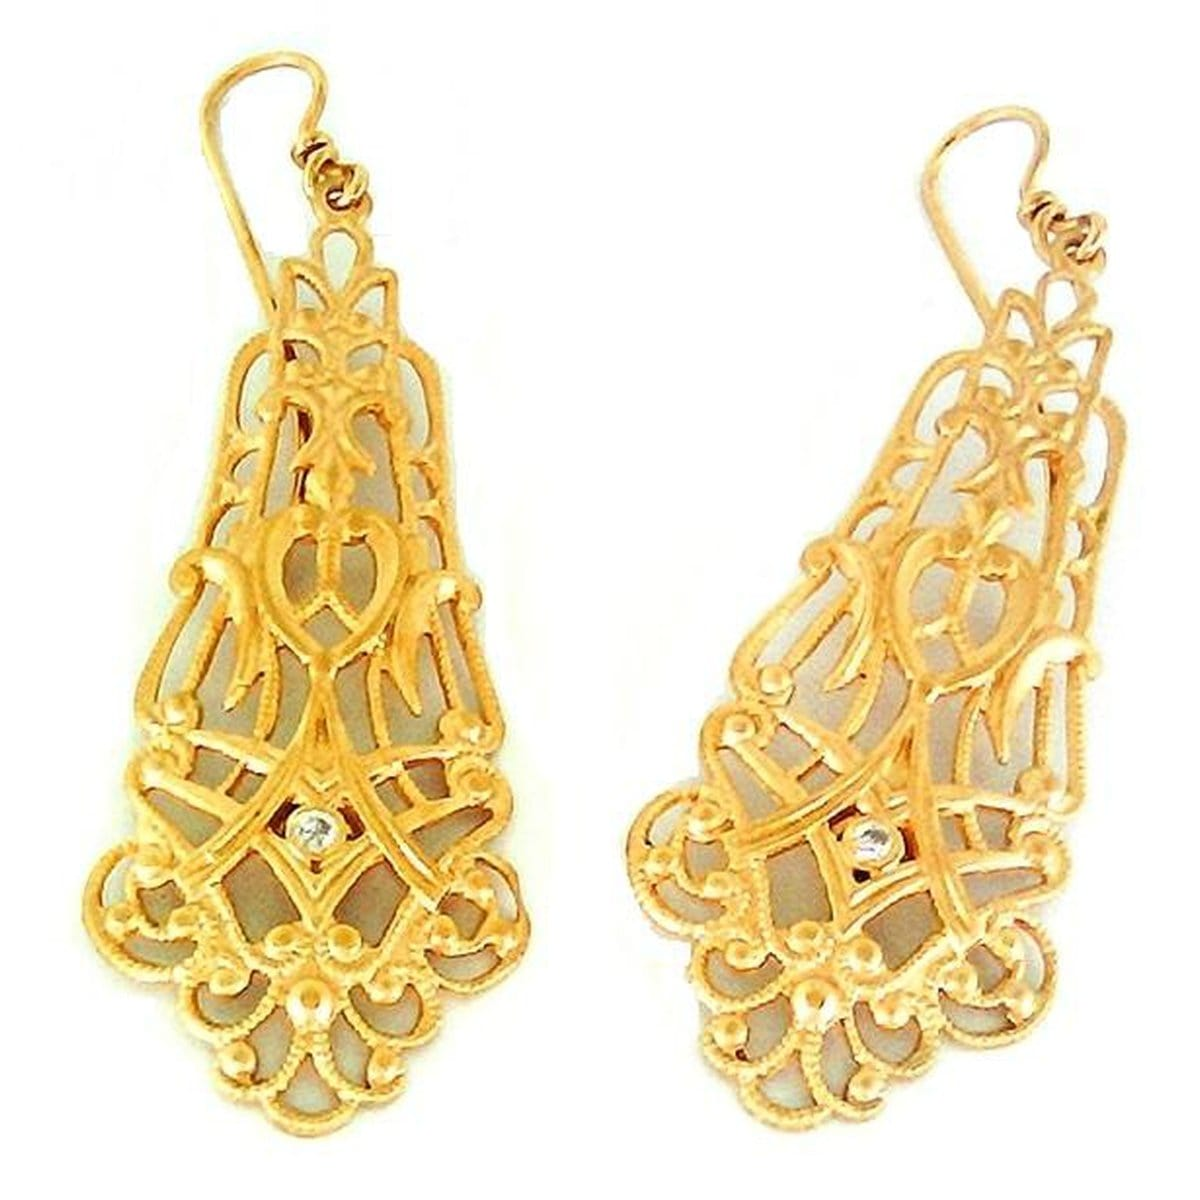 Marika Diamond & 14k Gold Earrings - M2008-Marika-Renee Taylor Gallery